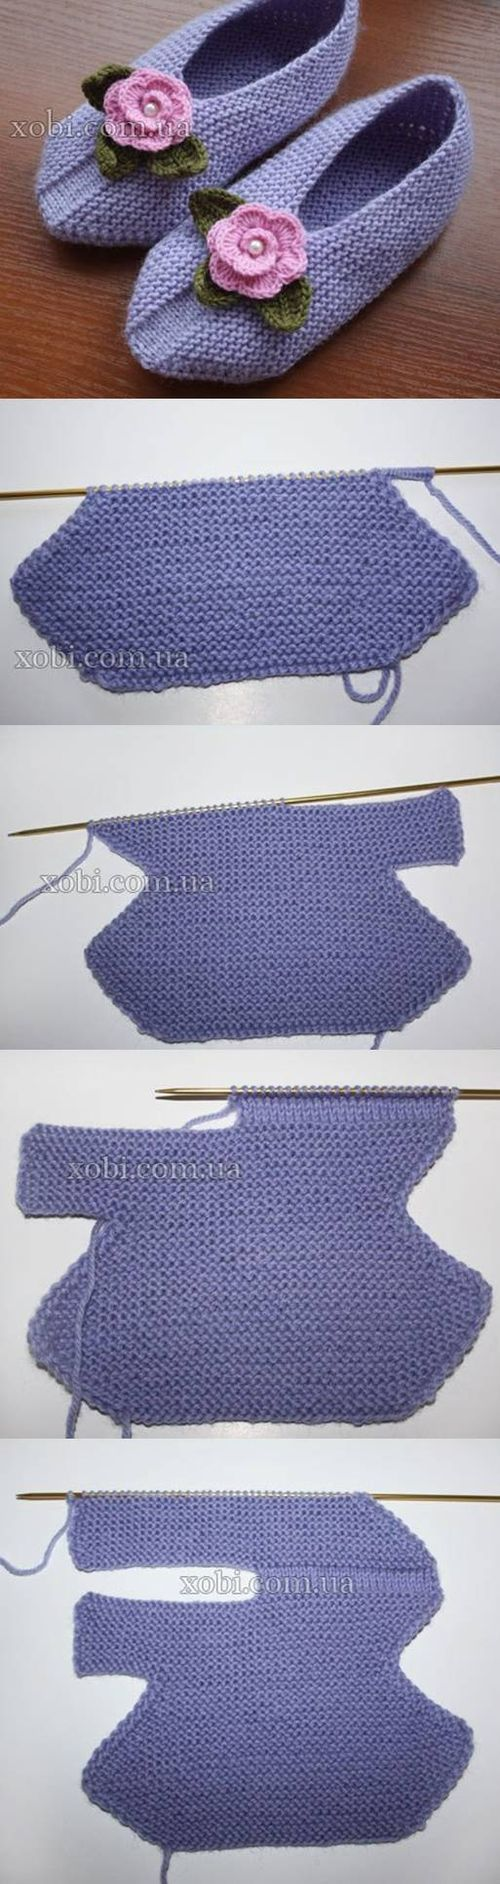 DIY Knitting Slippers DIY Projects / UsefulDIY.com on imgfave